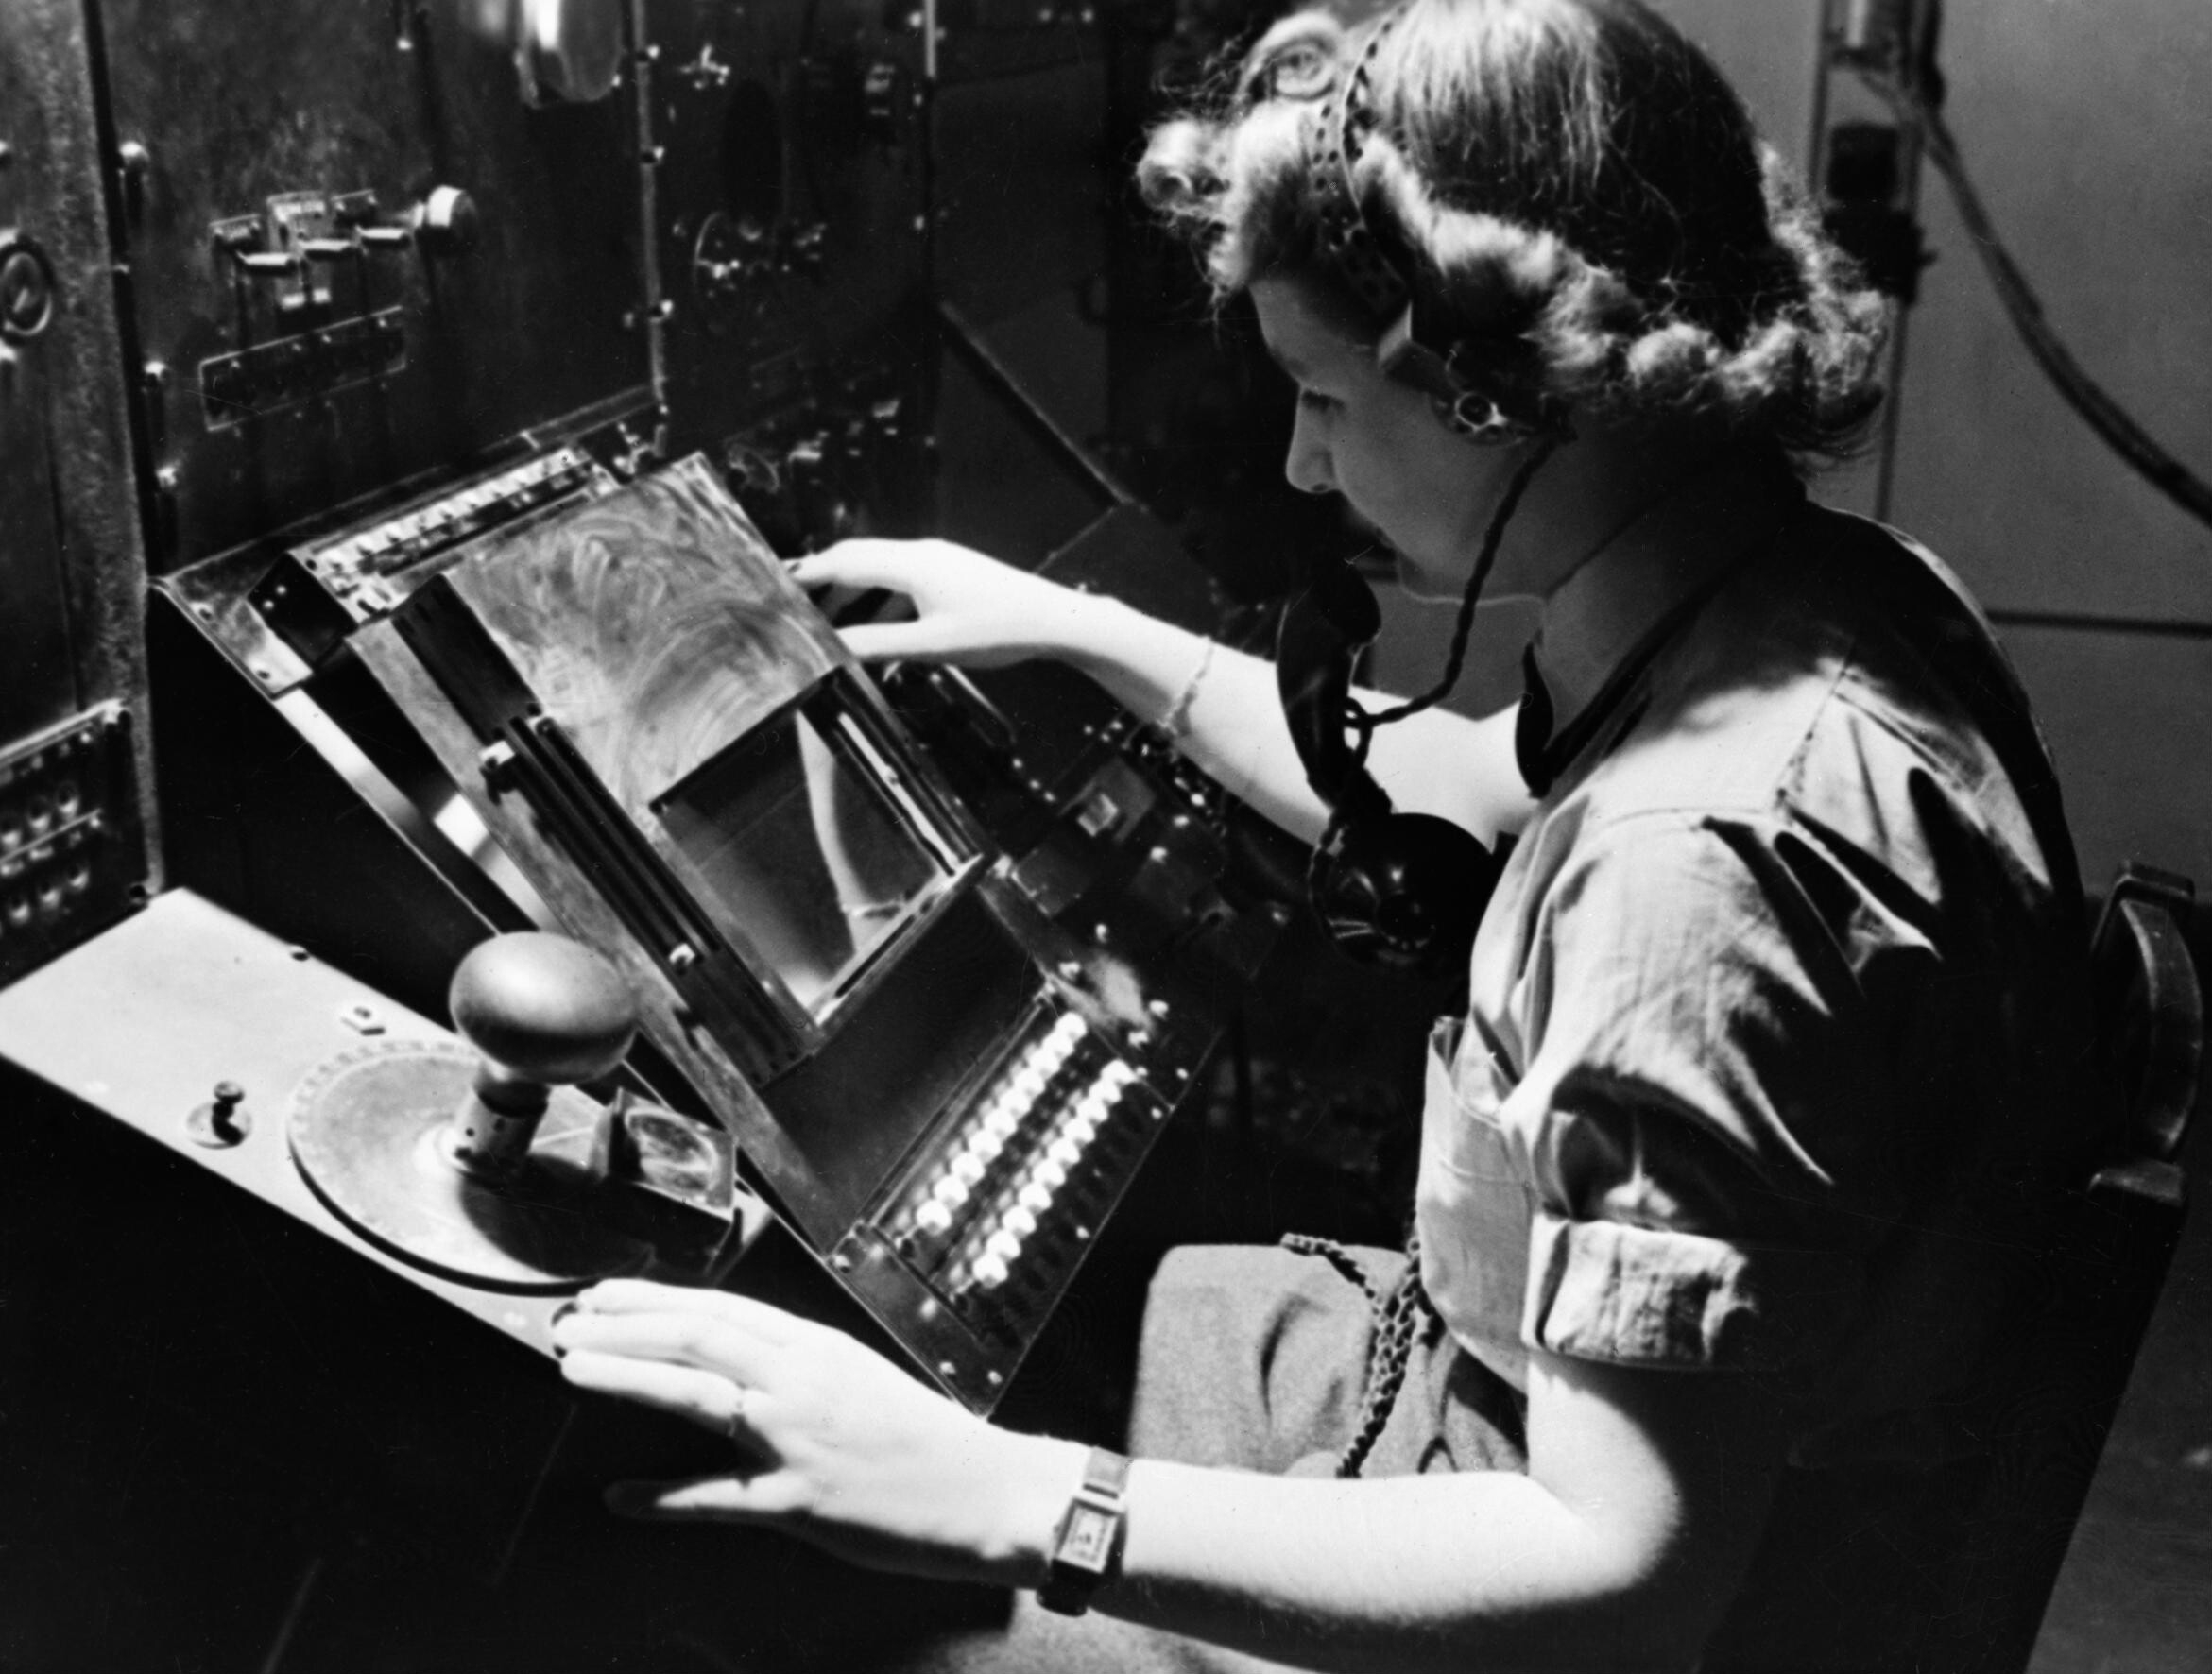 WAAF_radar_operator_Denise_Miley_plotting_aircraft_on_a_cathode_ray_tube_in_the_Receiver_Room_at_Bawdsey_Chain_Home_station_May_1945._CH15332